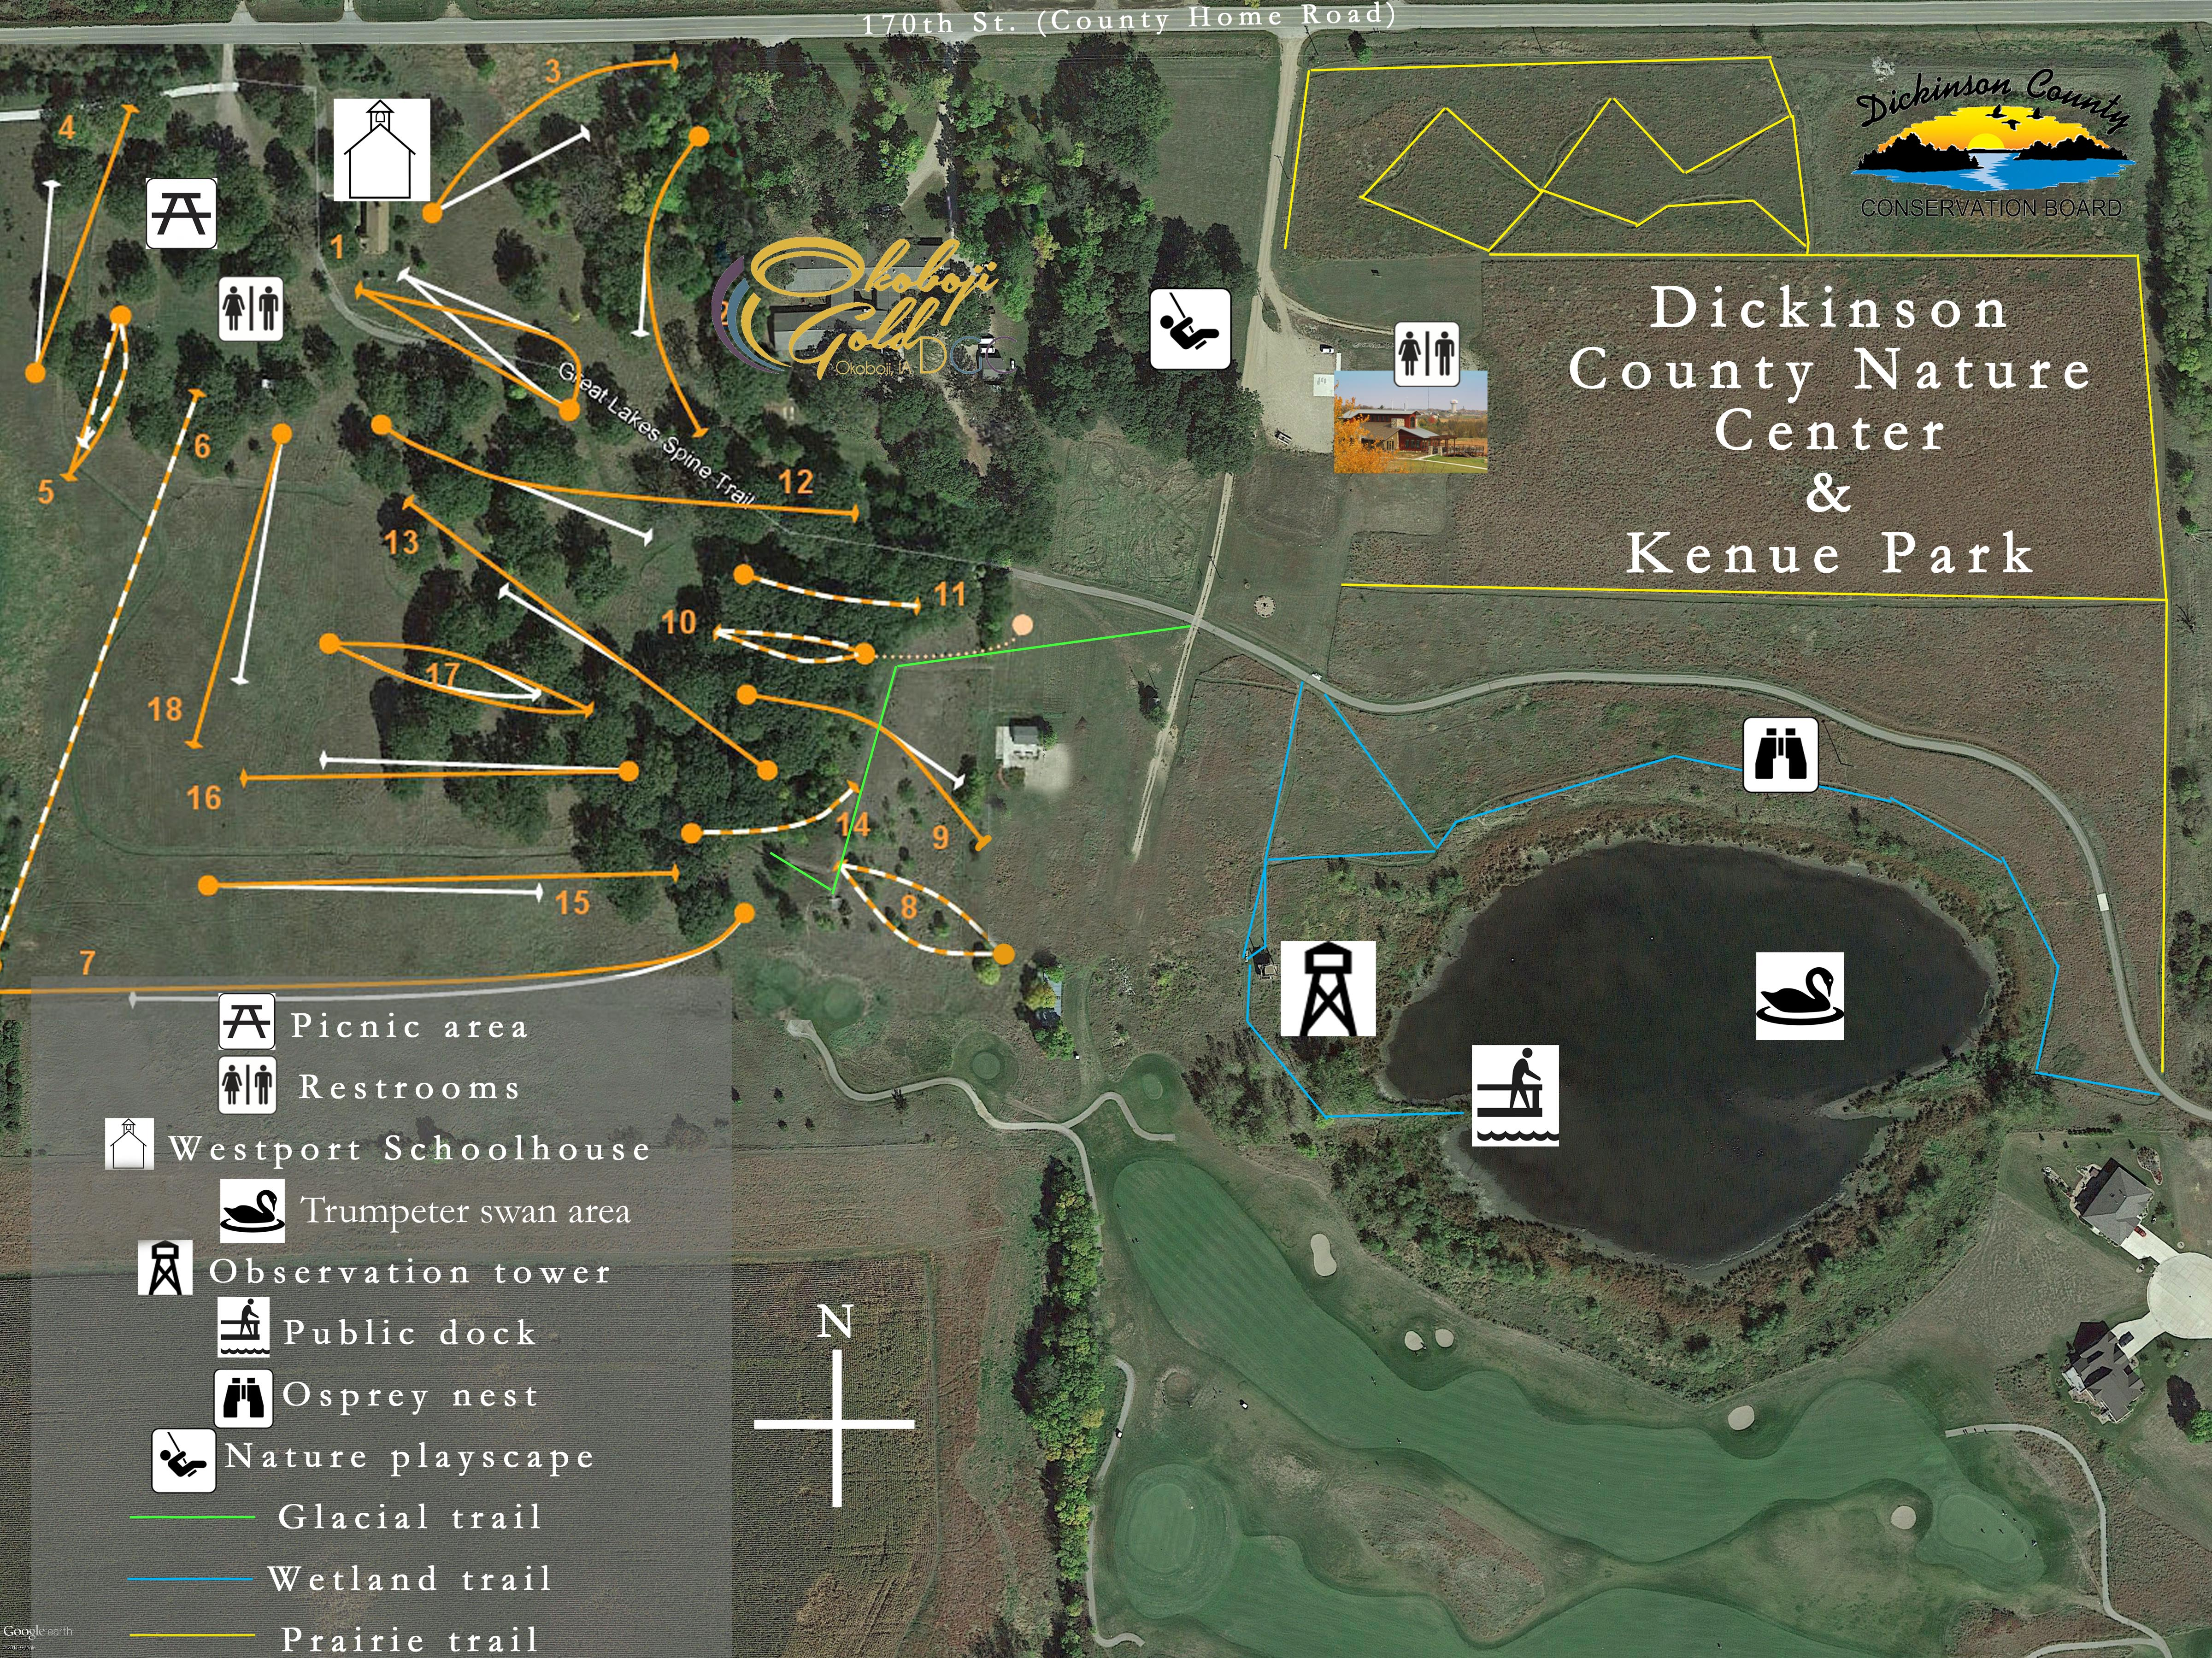 Dickinson County Nature Center     Dickinson County Conservation Board Map of Kenue Park